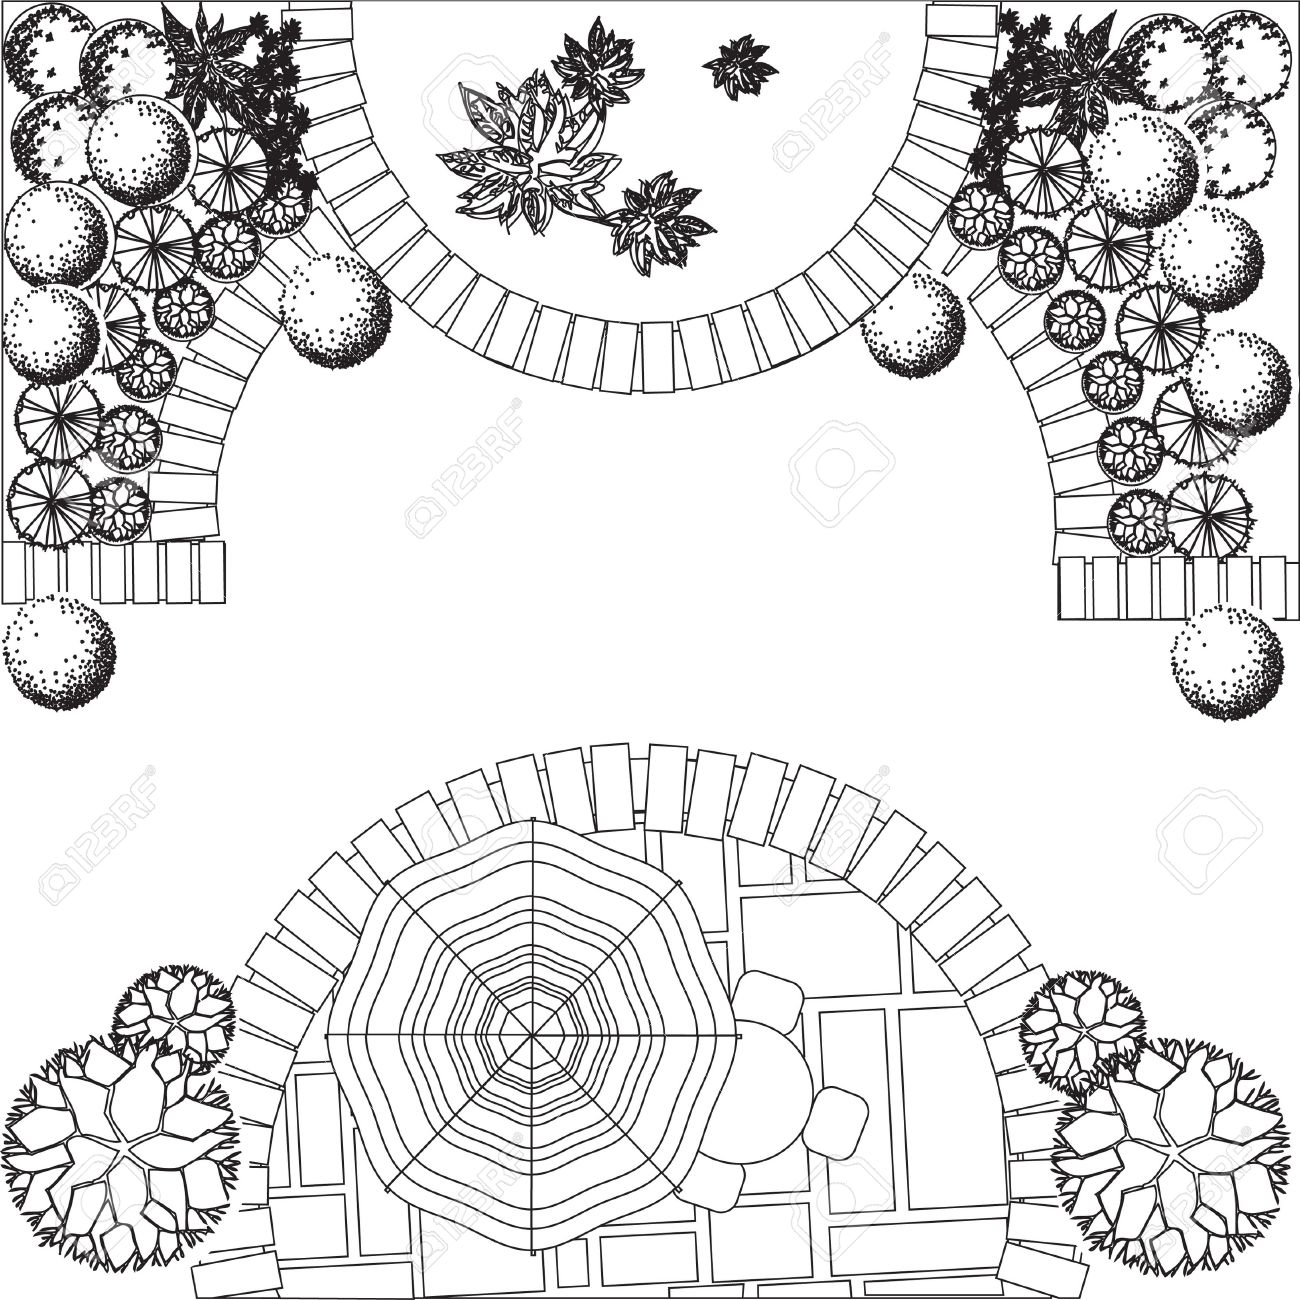 Landscape Design Drawing At Getdrawings Free Download